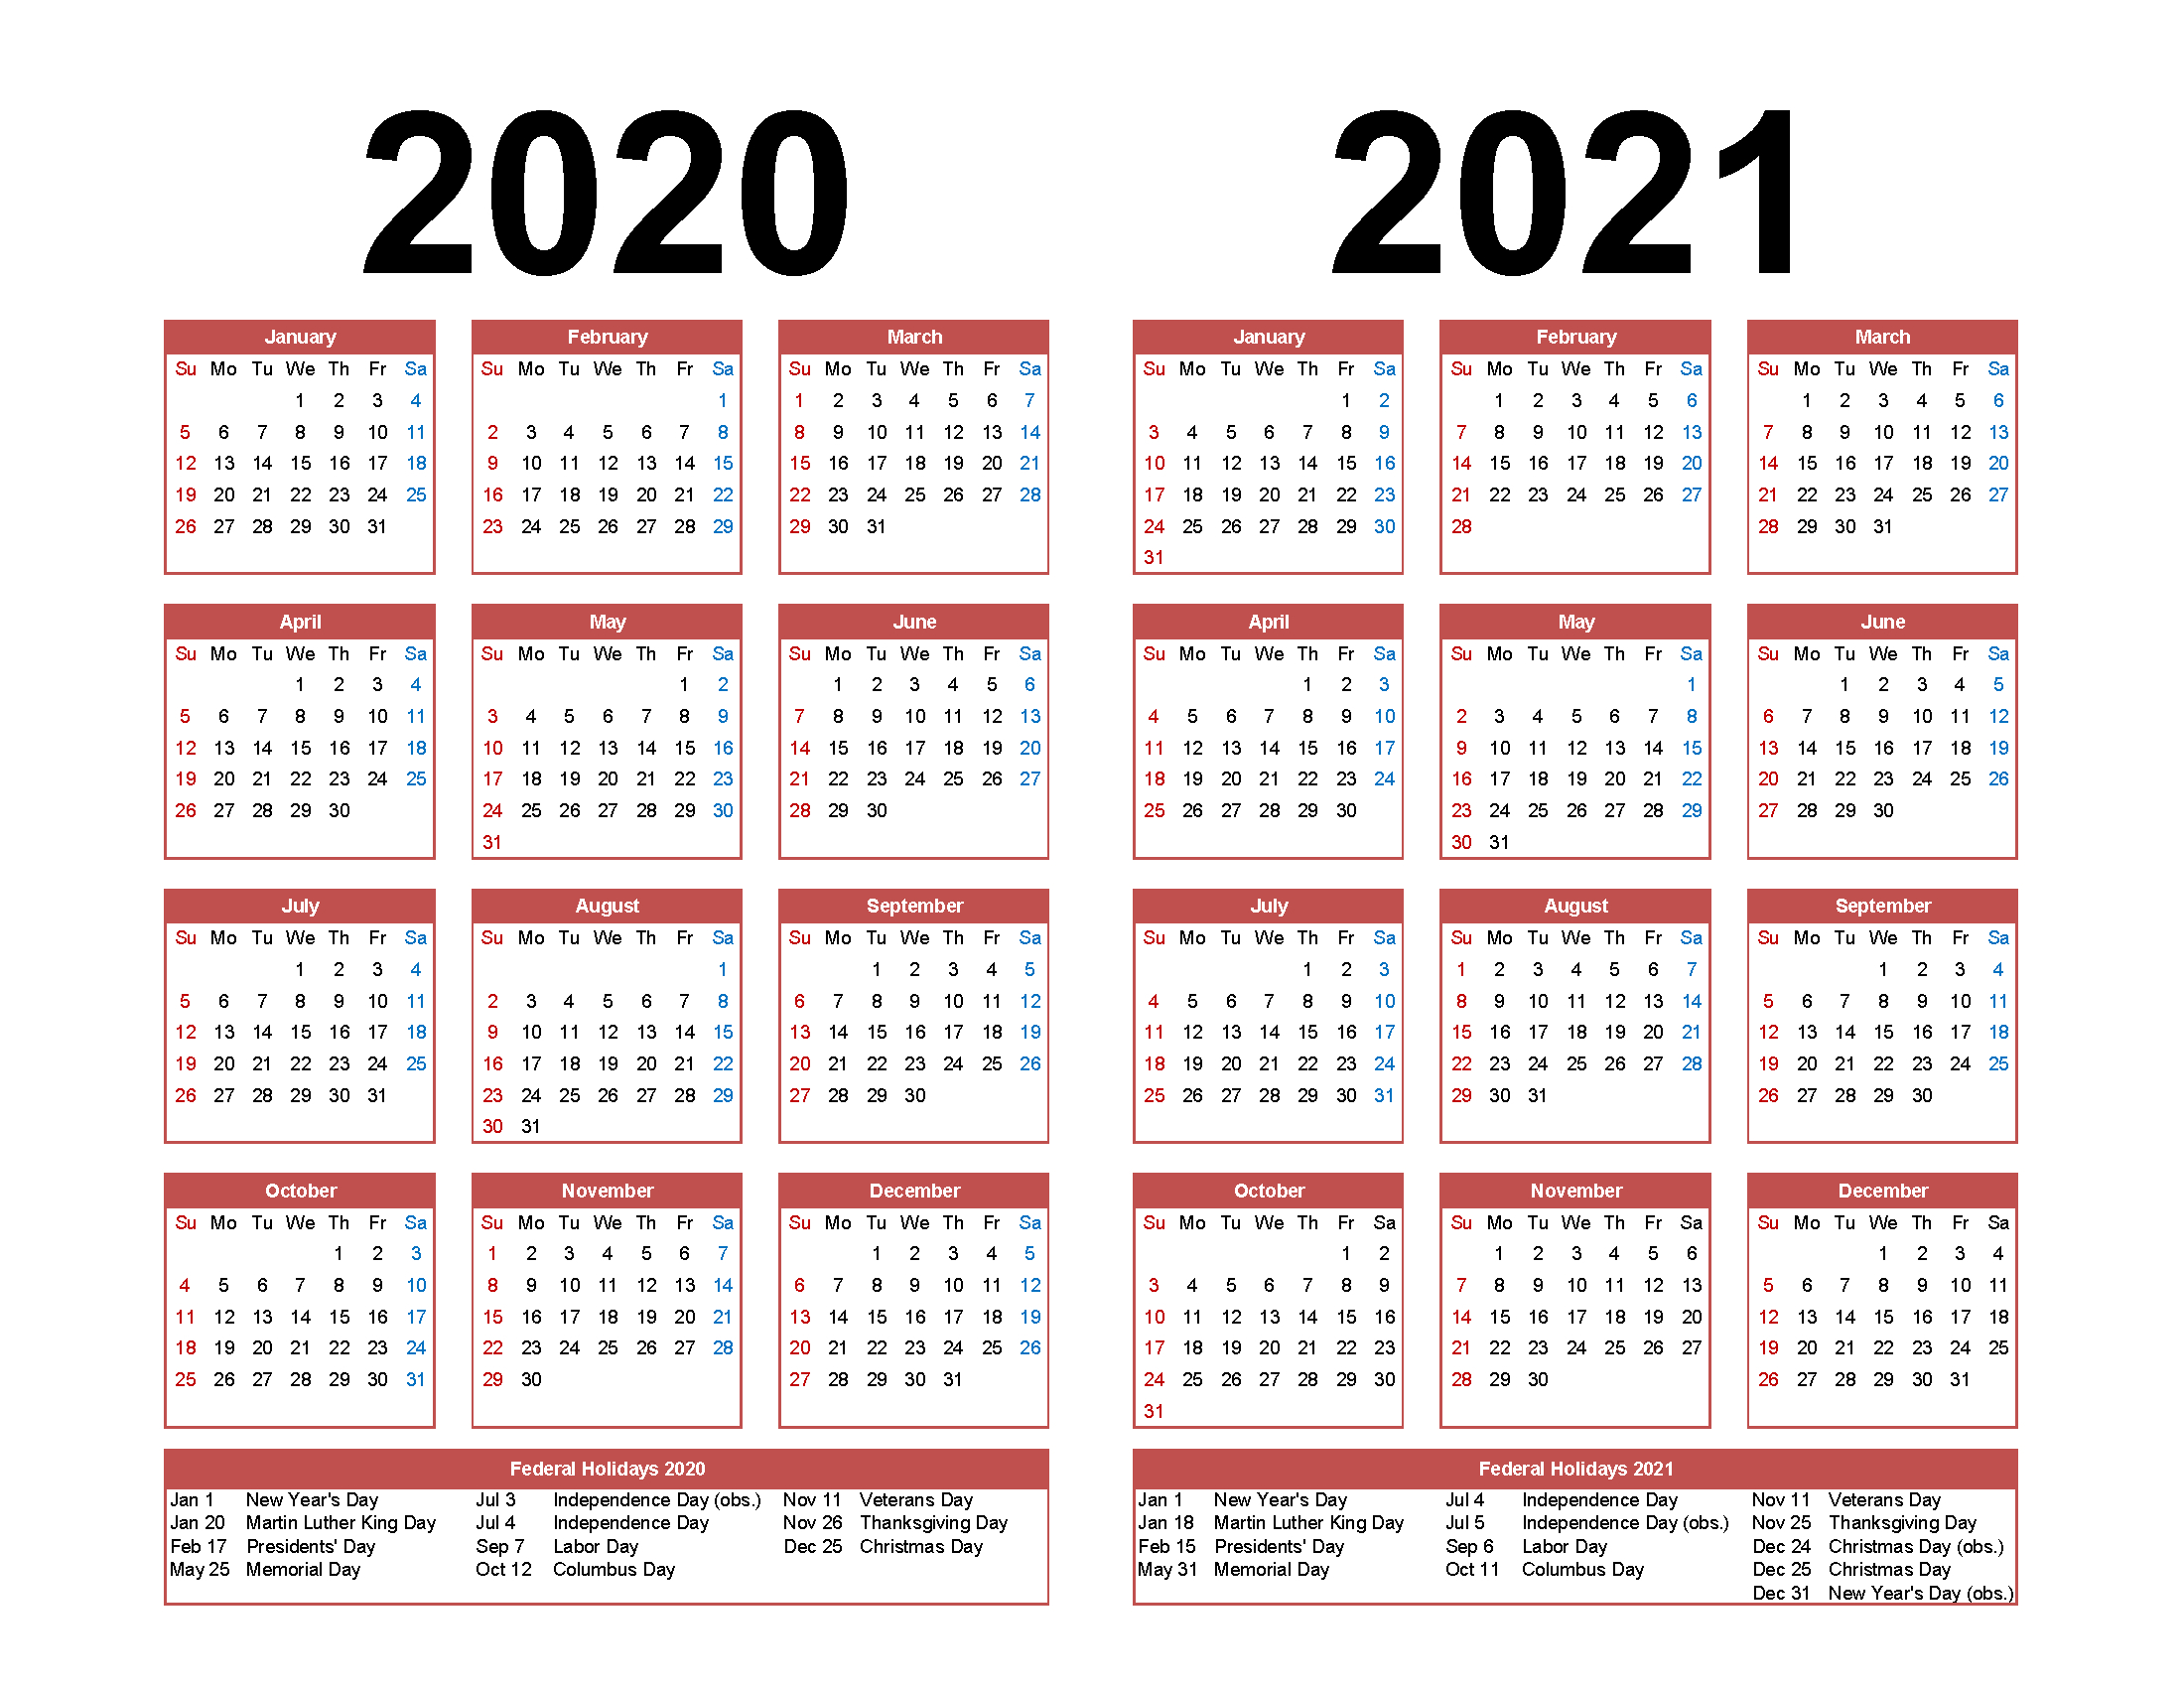 2019 2020 Two Year Calendar Free Printable Word Templates pertaining to 2 Year Calendar Template 2020 2021